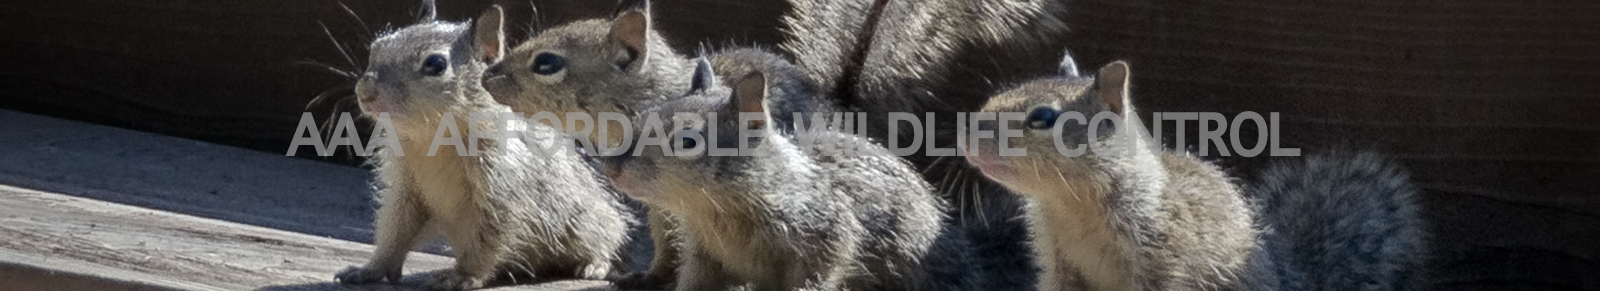 Affordable Wildlife Control company servicing the Toronto Greater Toronto Area. We get rid of animals from attics. Squirrels, raccoons & birds. Wildlife control in and near Toronto.